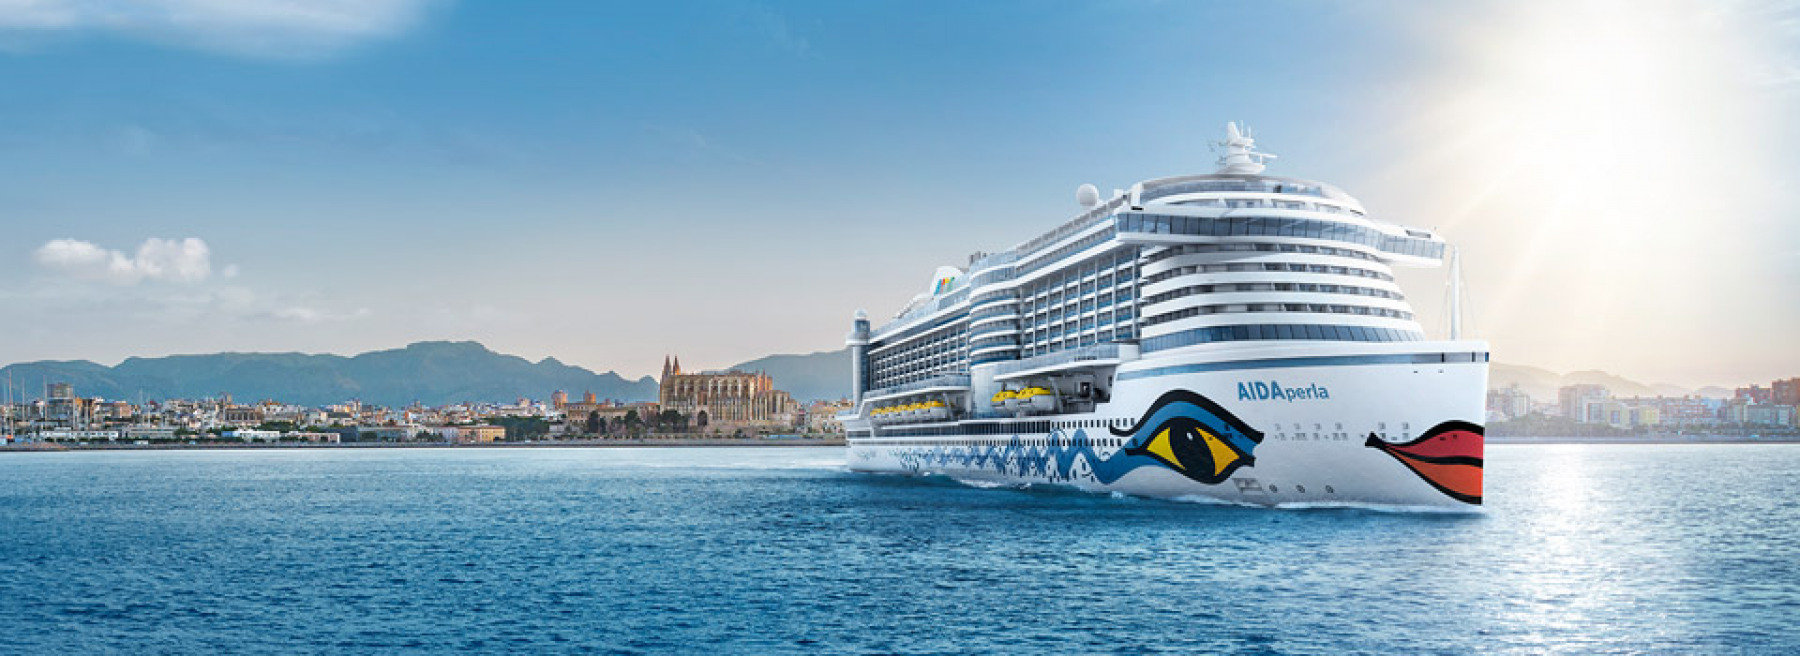 aida cruises Lines Holiday Packages - Infinity Cruise